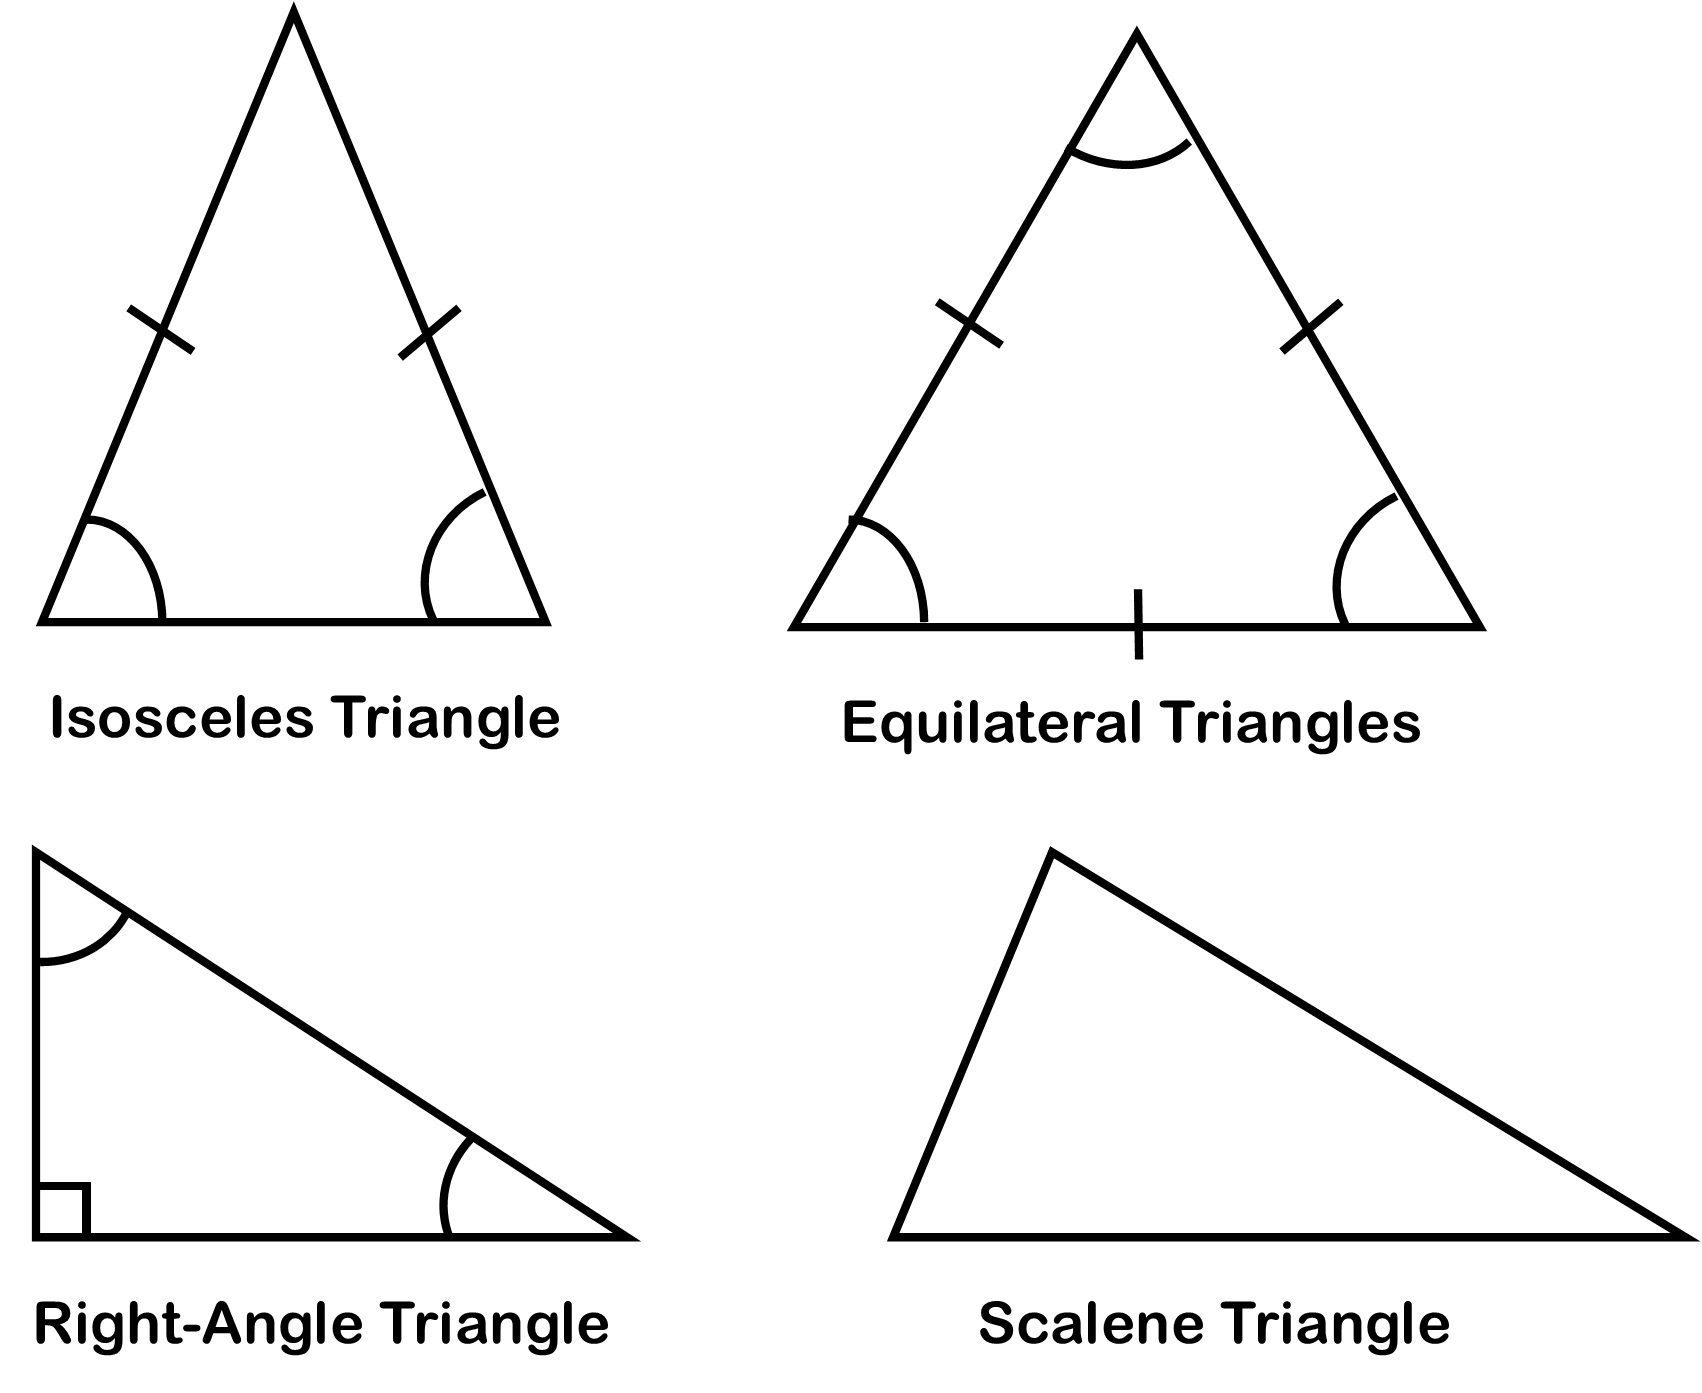 About Types Of Triangles Worksheet